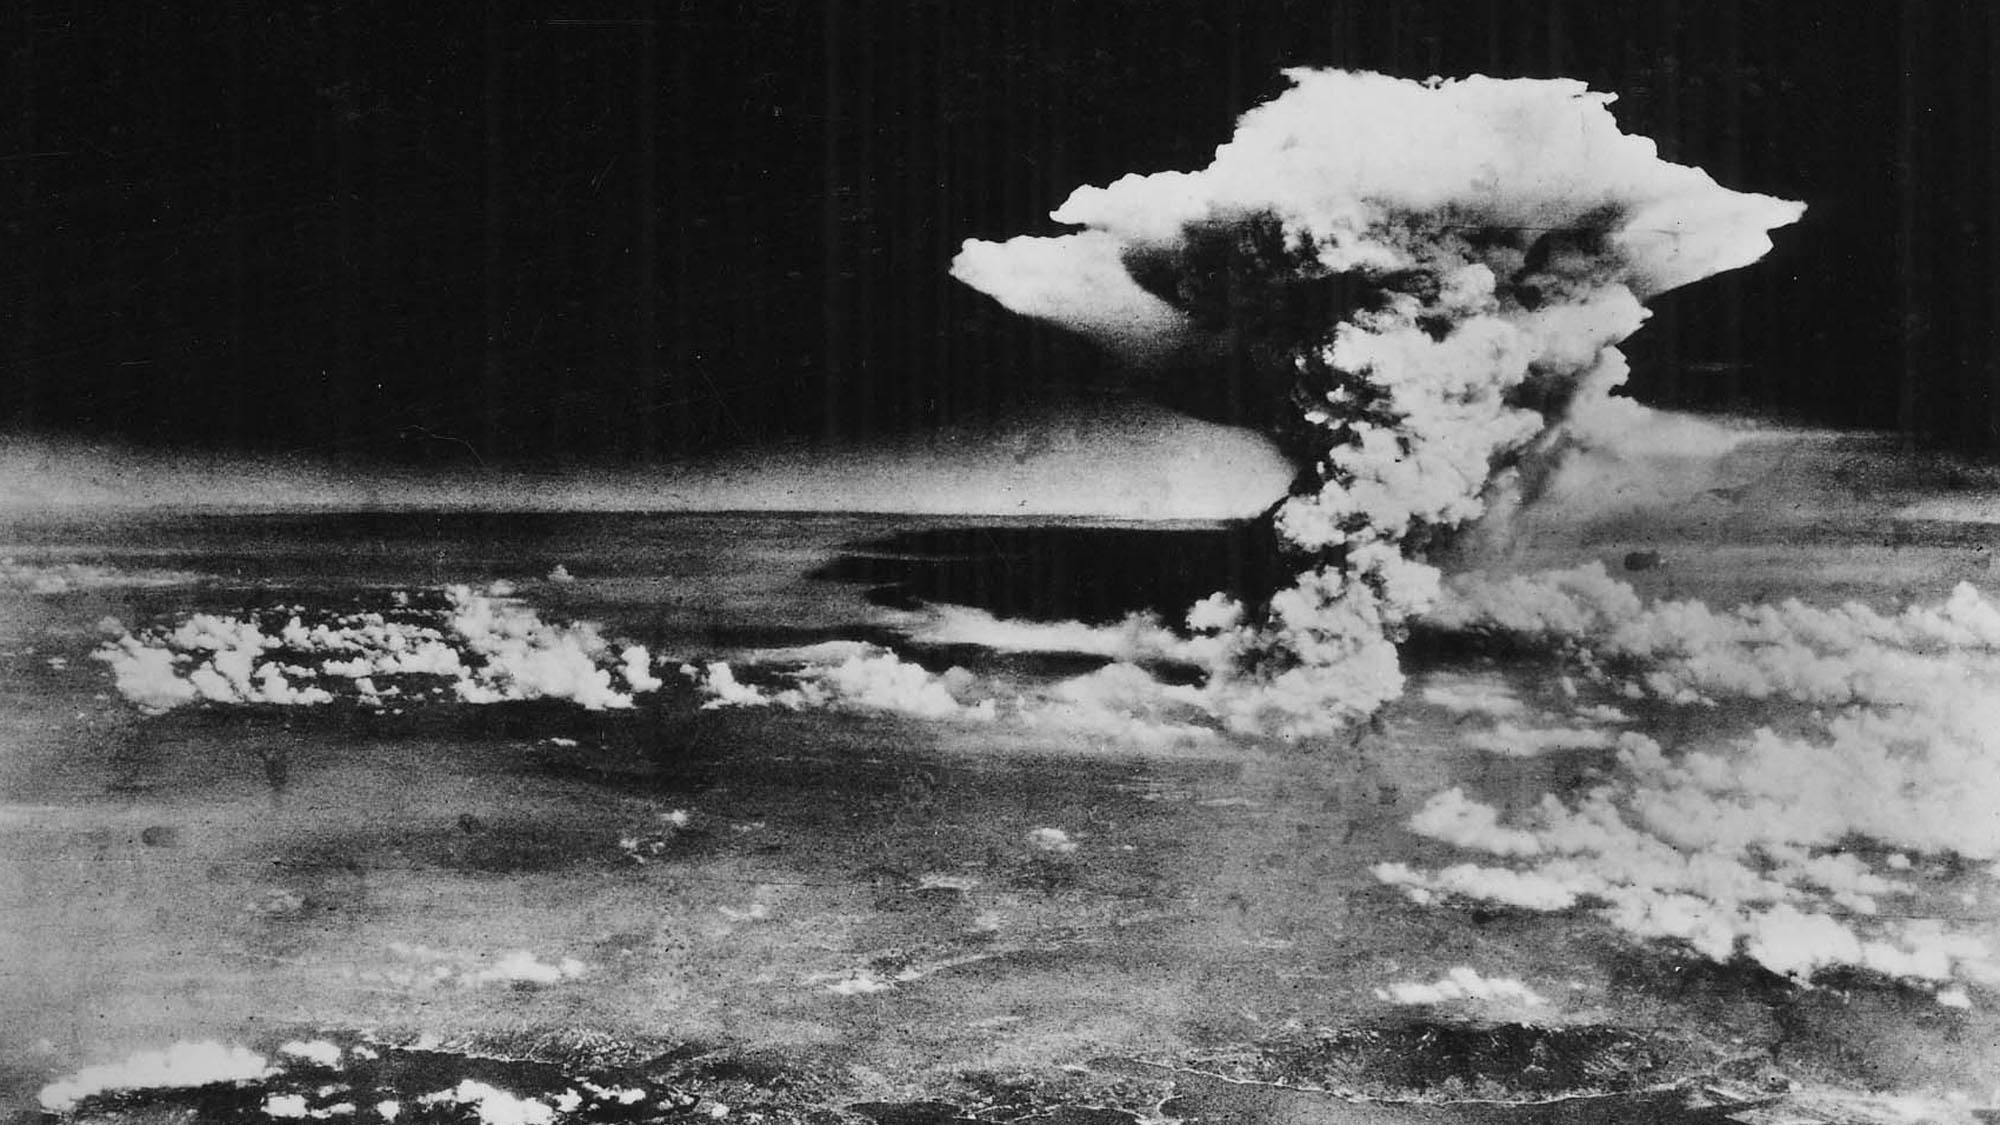 The mushroom cloud over Hiroshima. Image courtesy wikimedia.org,